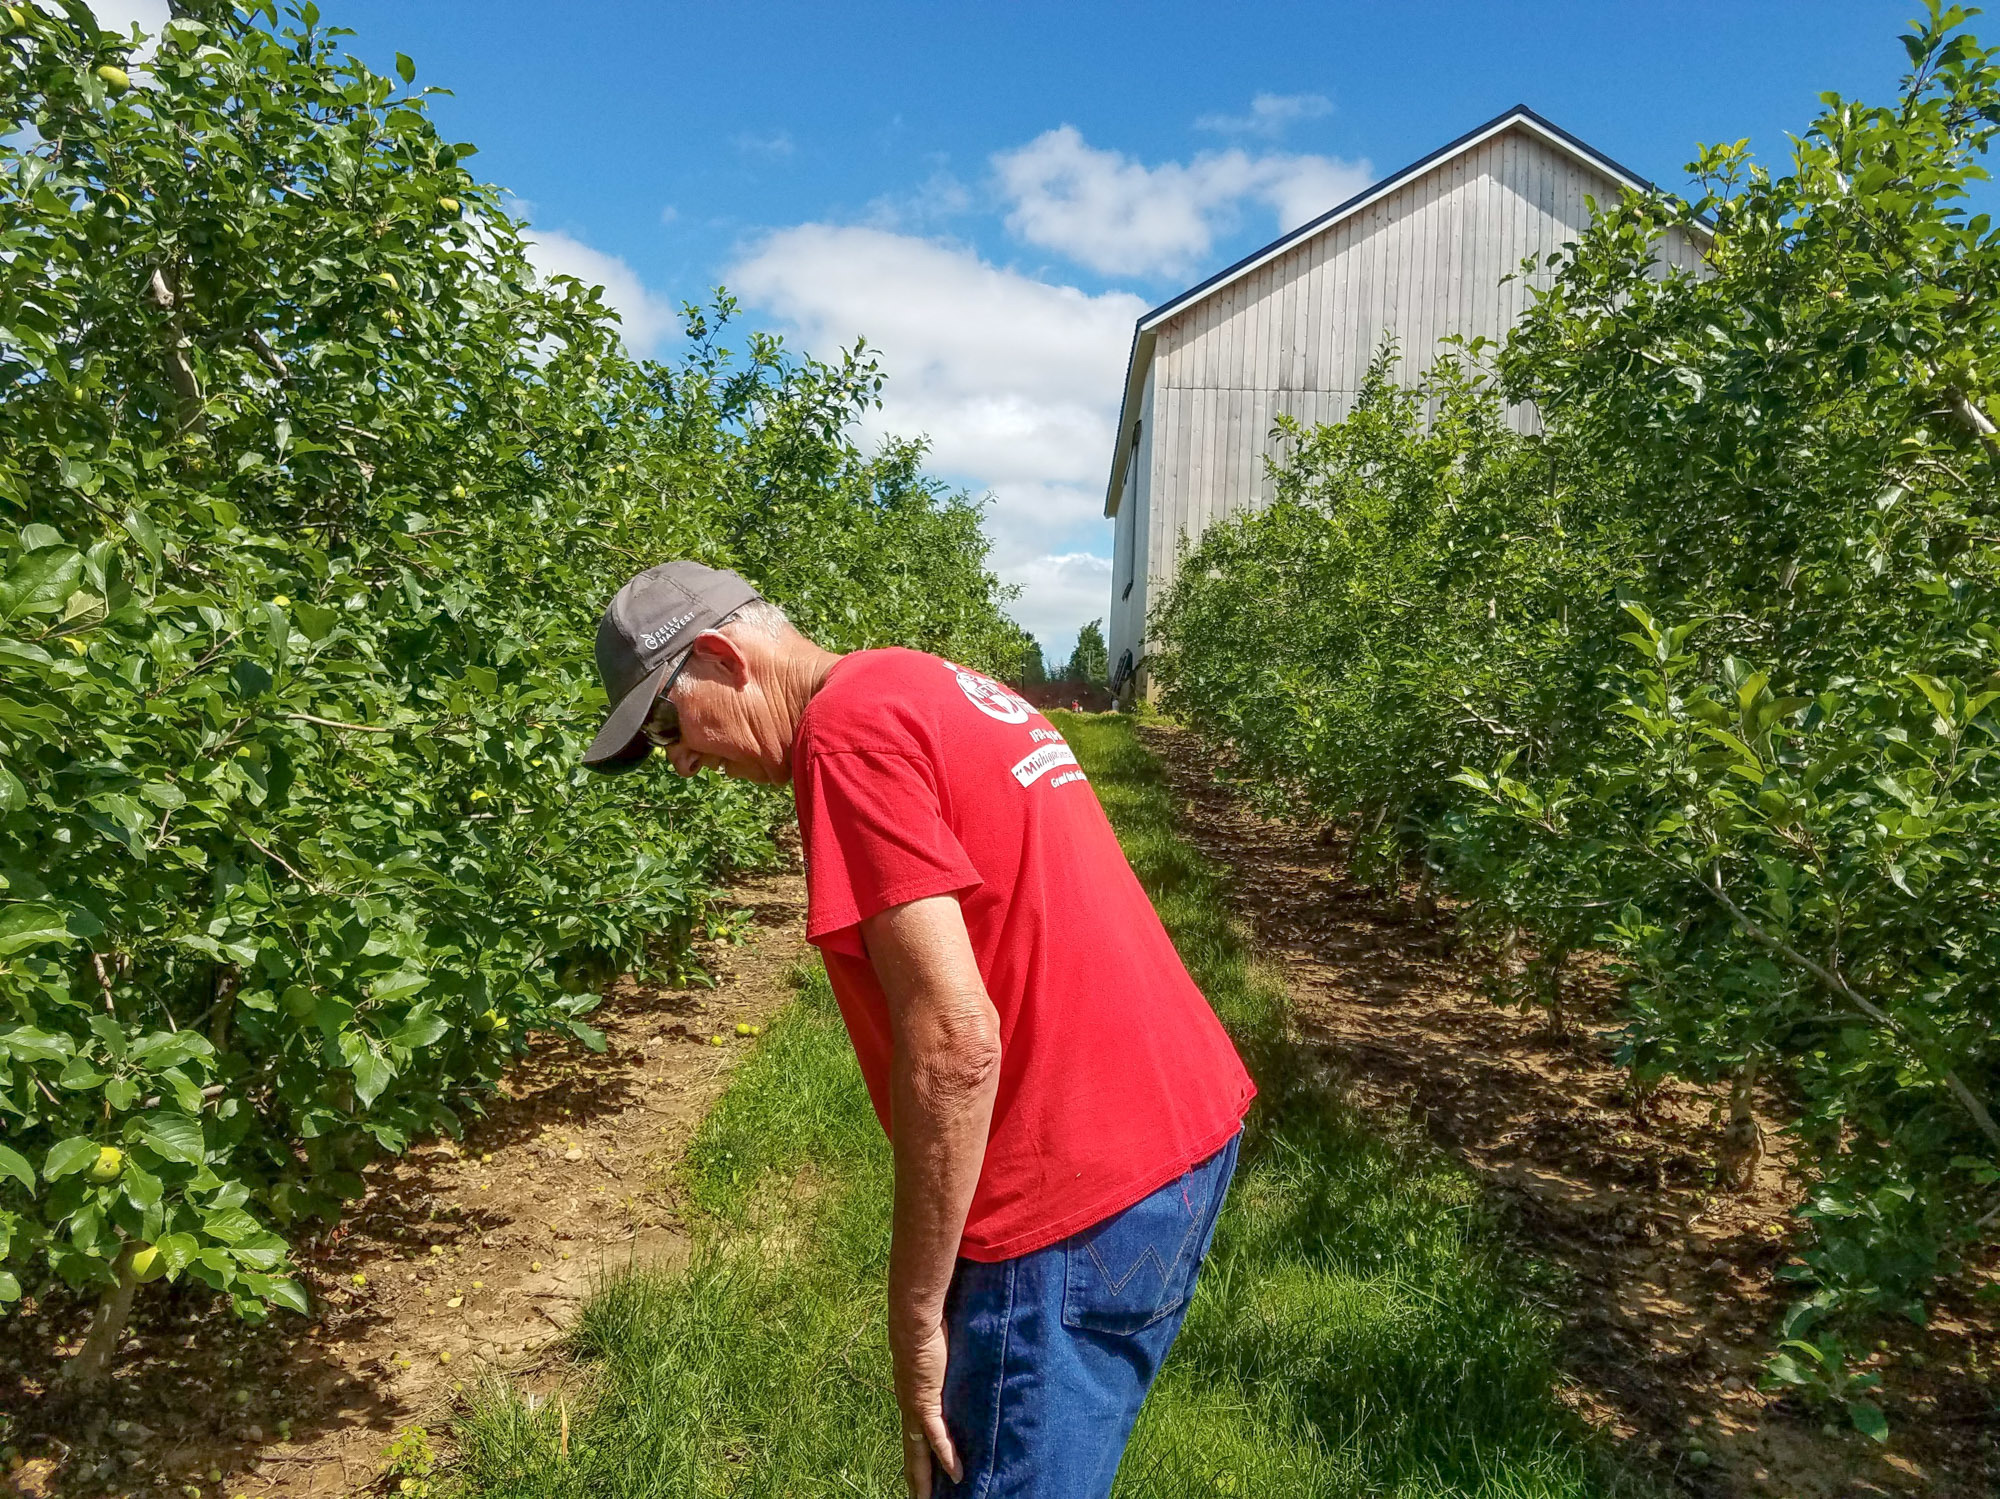 A Few More Bad Apples: As The Climate Changes, Fruit Growing Does, Too